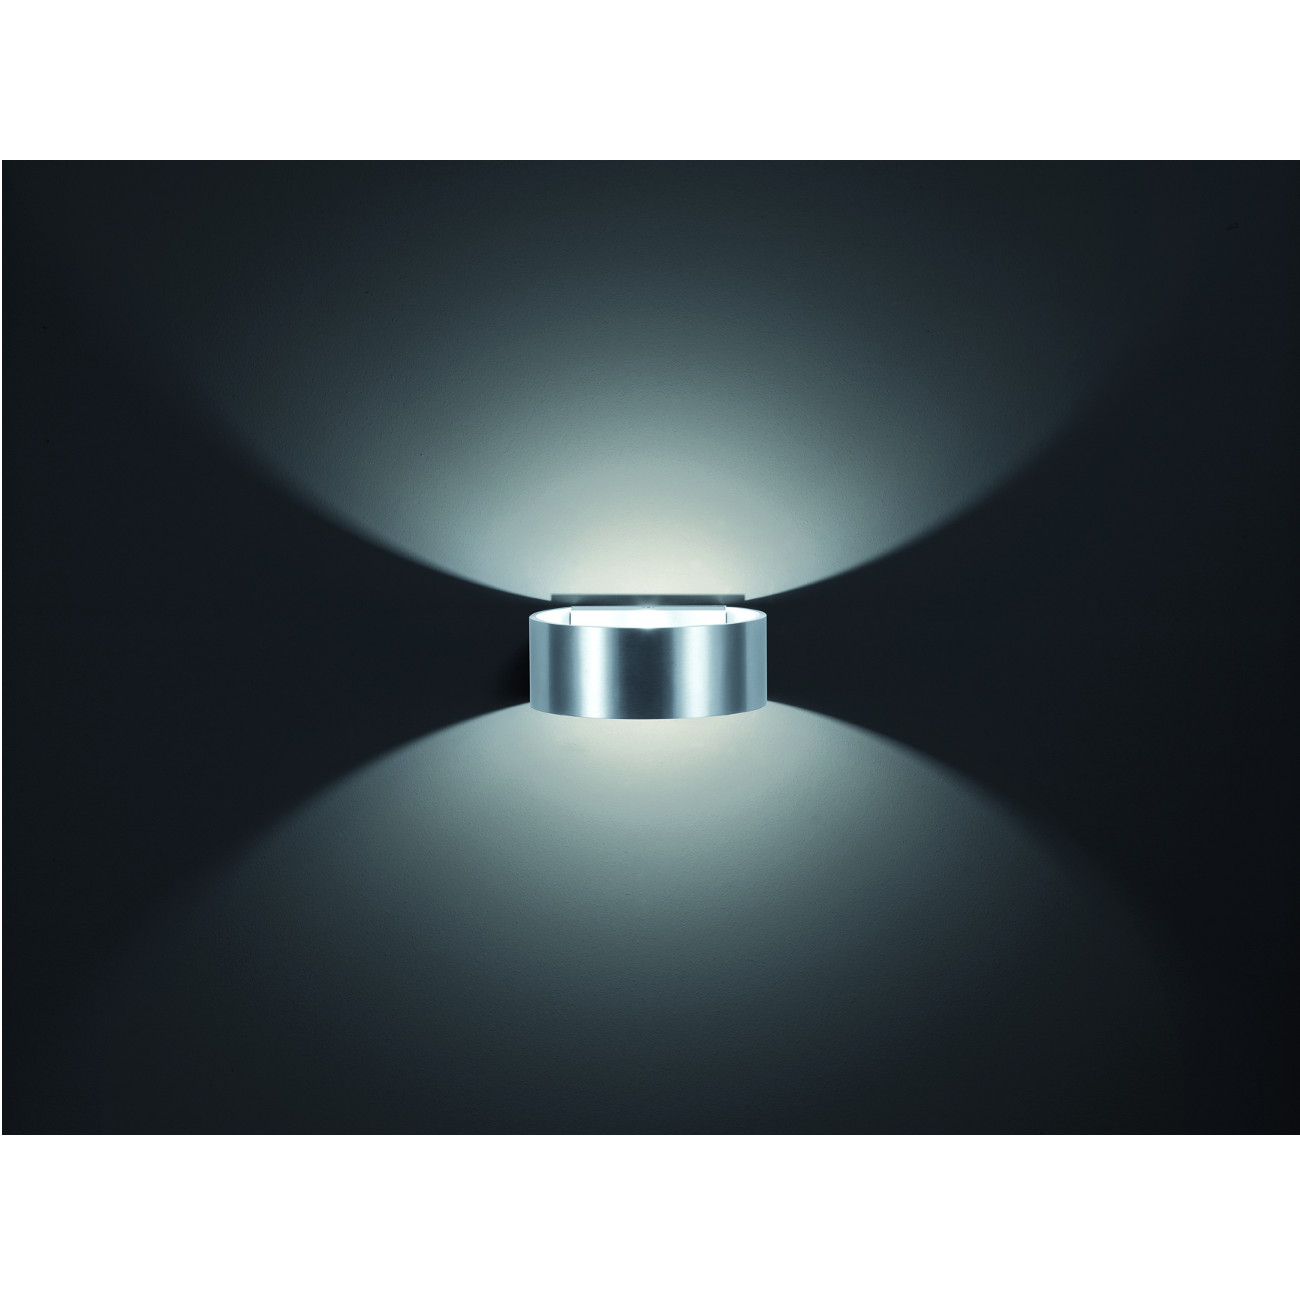 Wandleuchten Design Stilechte Wandleuchte Led Up And Downlight Design Rund